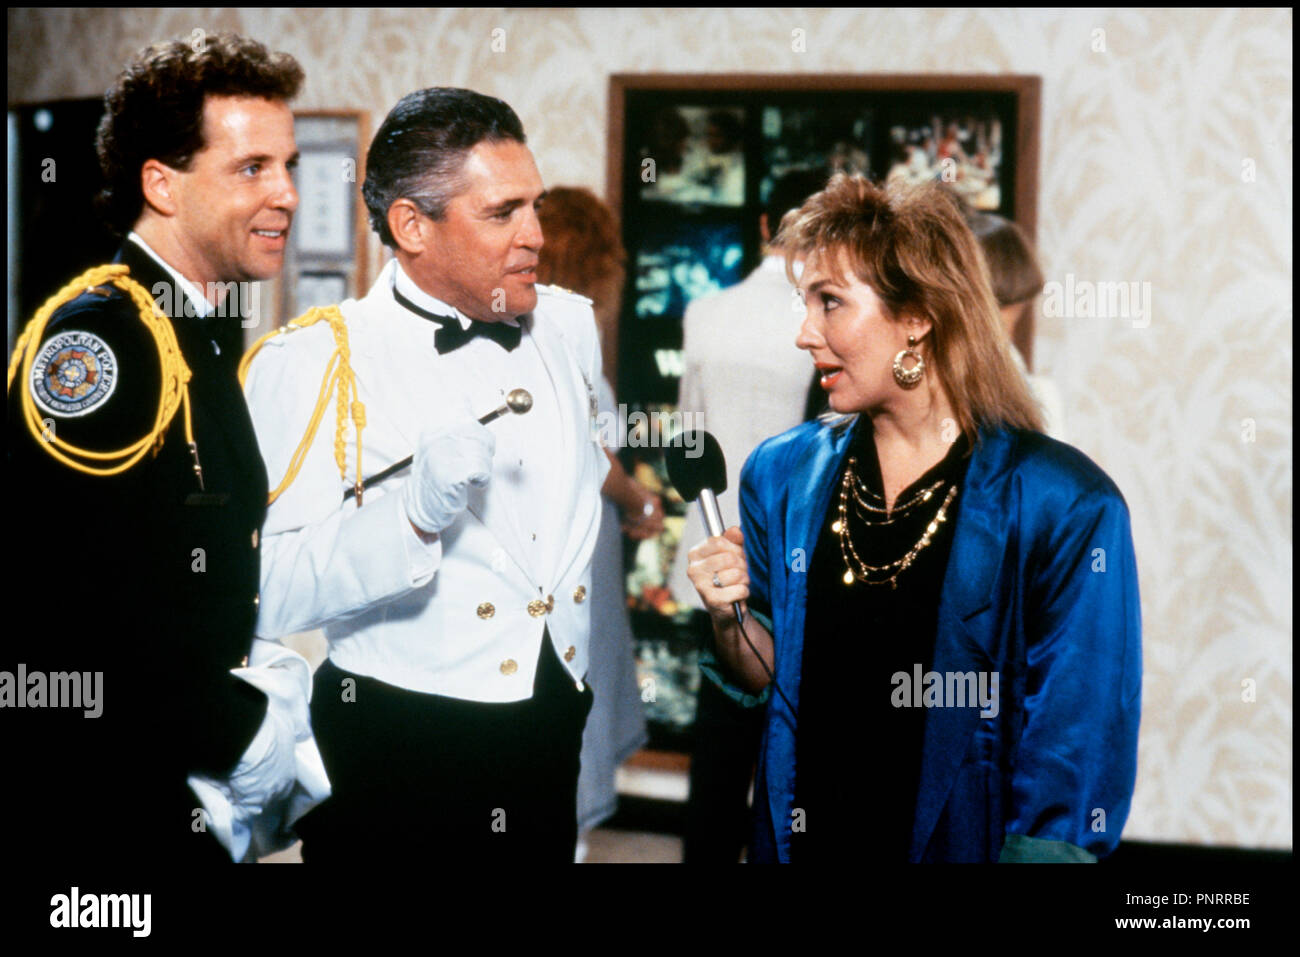 The Gruber Tapes >> Police Interview Usa Stock Photos & Police Interview Usa Stock Images - Alamy